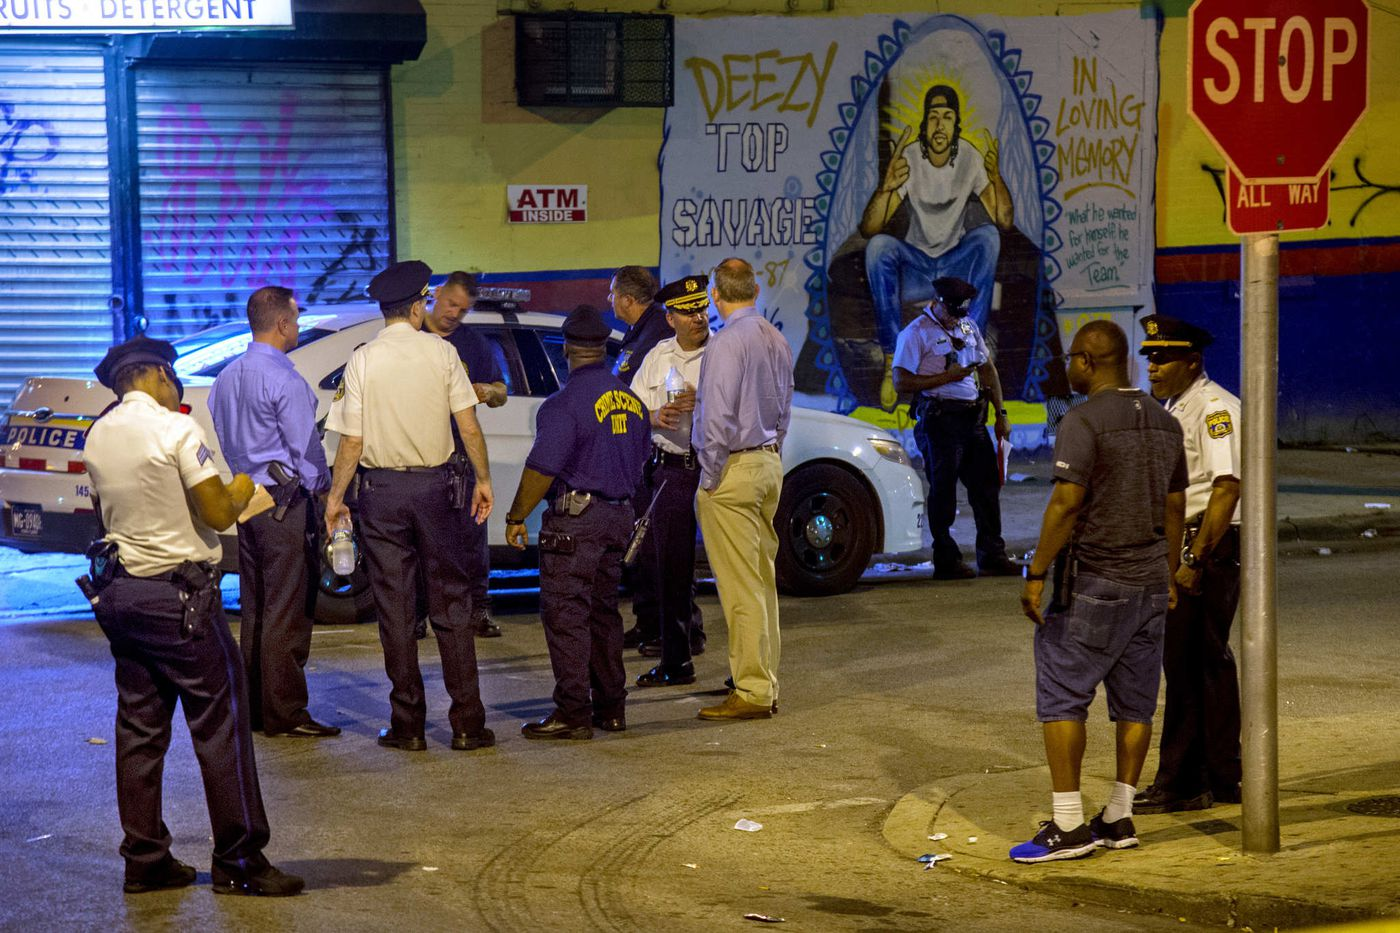 Two killed, 4 wounded in North Philly drive-by shooting